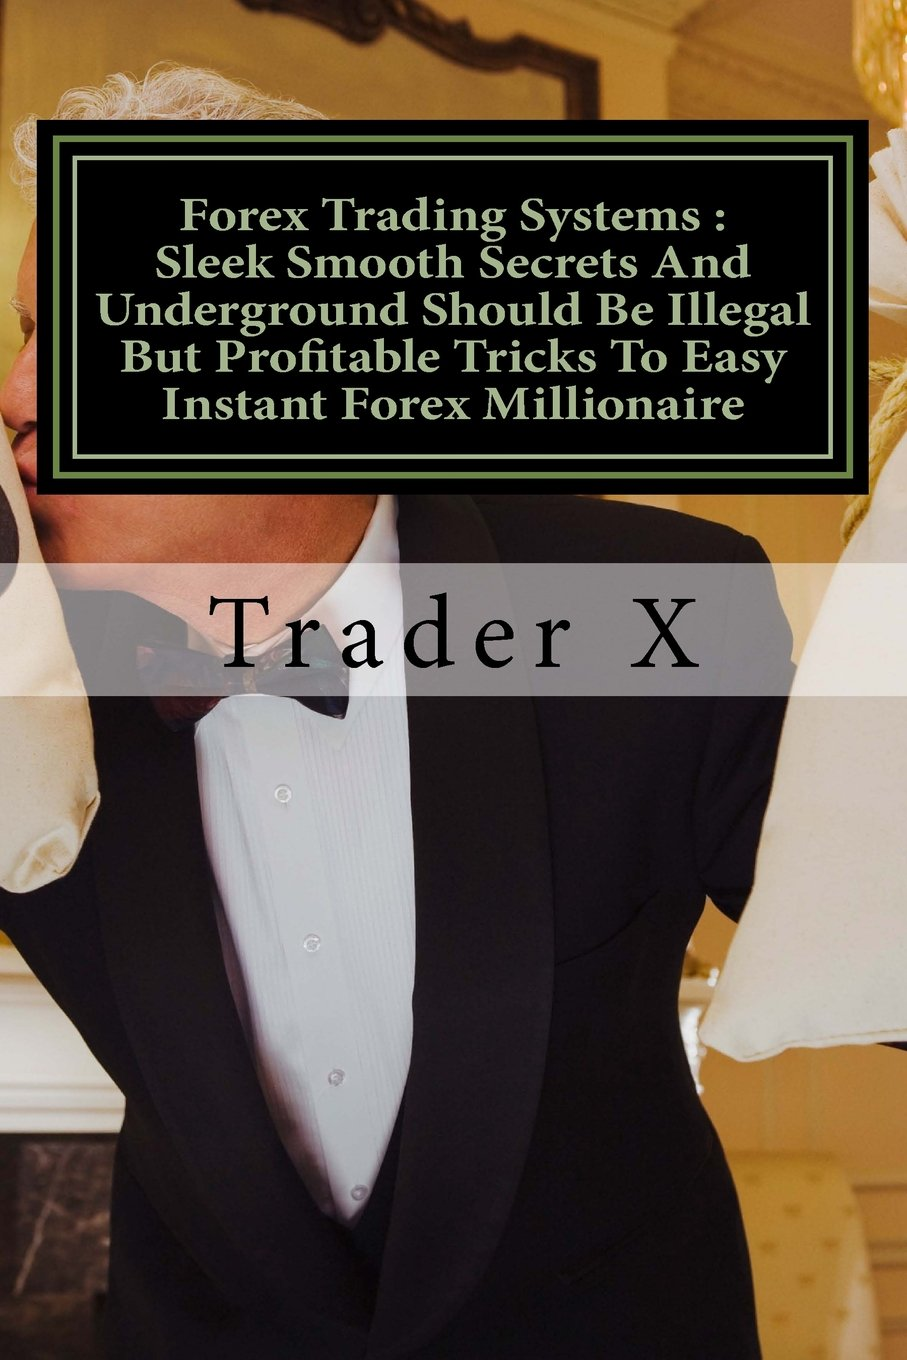 Download Forex Trading Systems : Sleek Smooth Secrets And Underground Should Be Illegal But Profitable Tricks To Easy Instant Forex Millionaire: Bust The Losing Cycle Live Anywhere Join The New Rich pdf epub